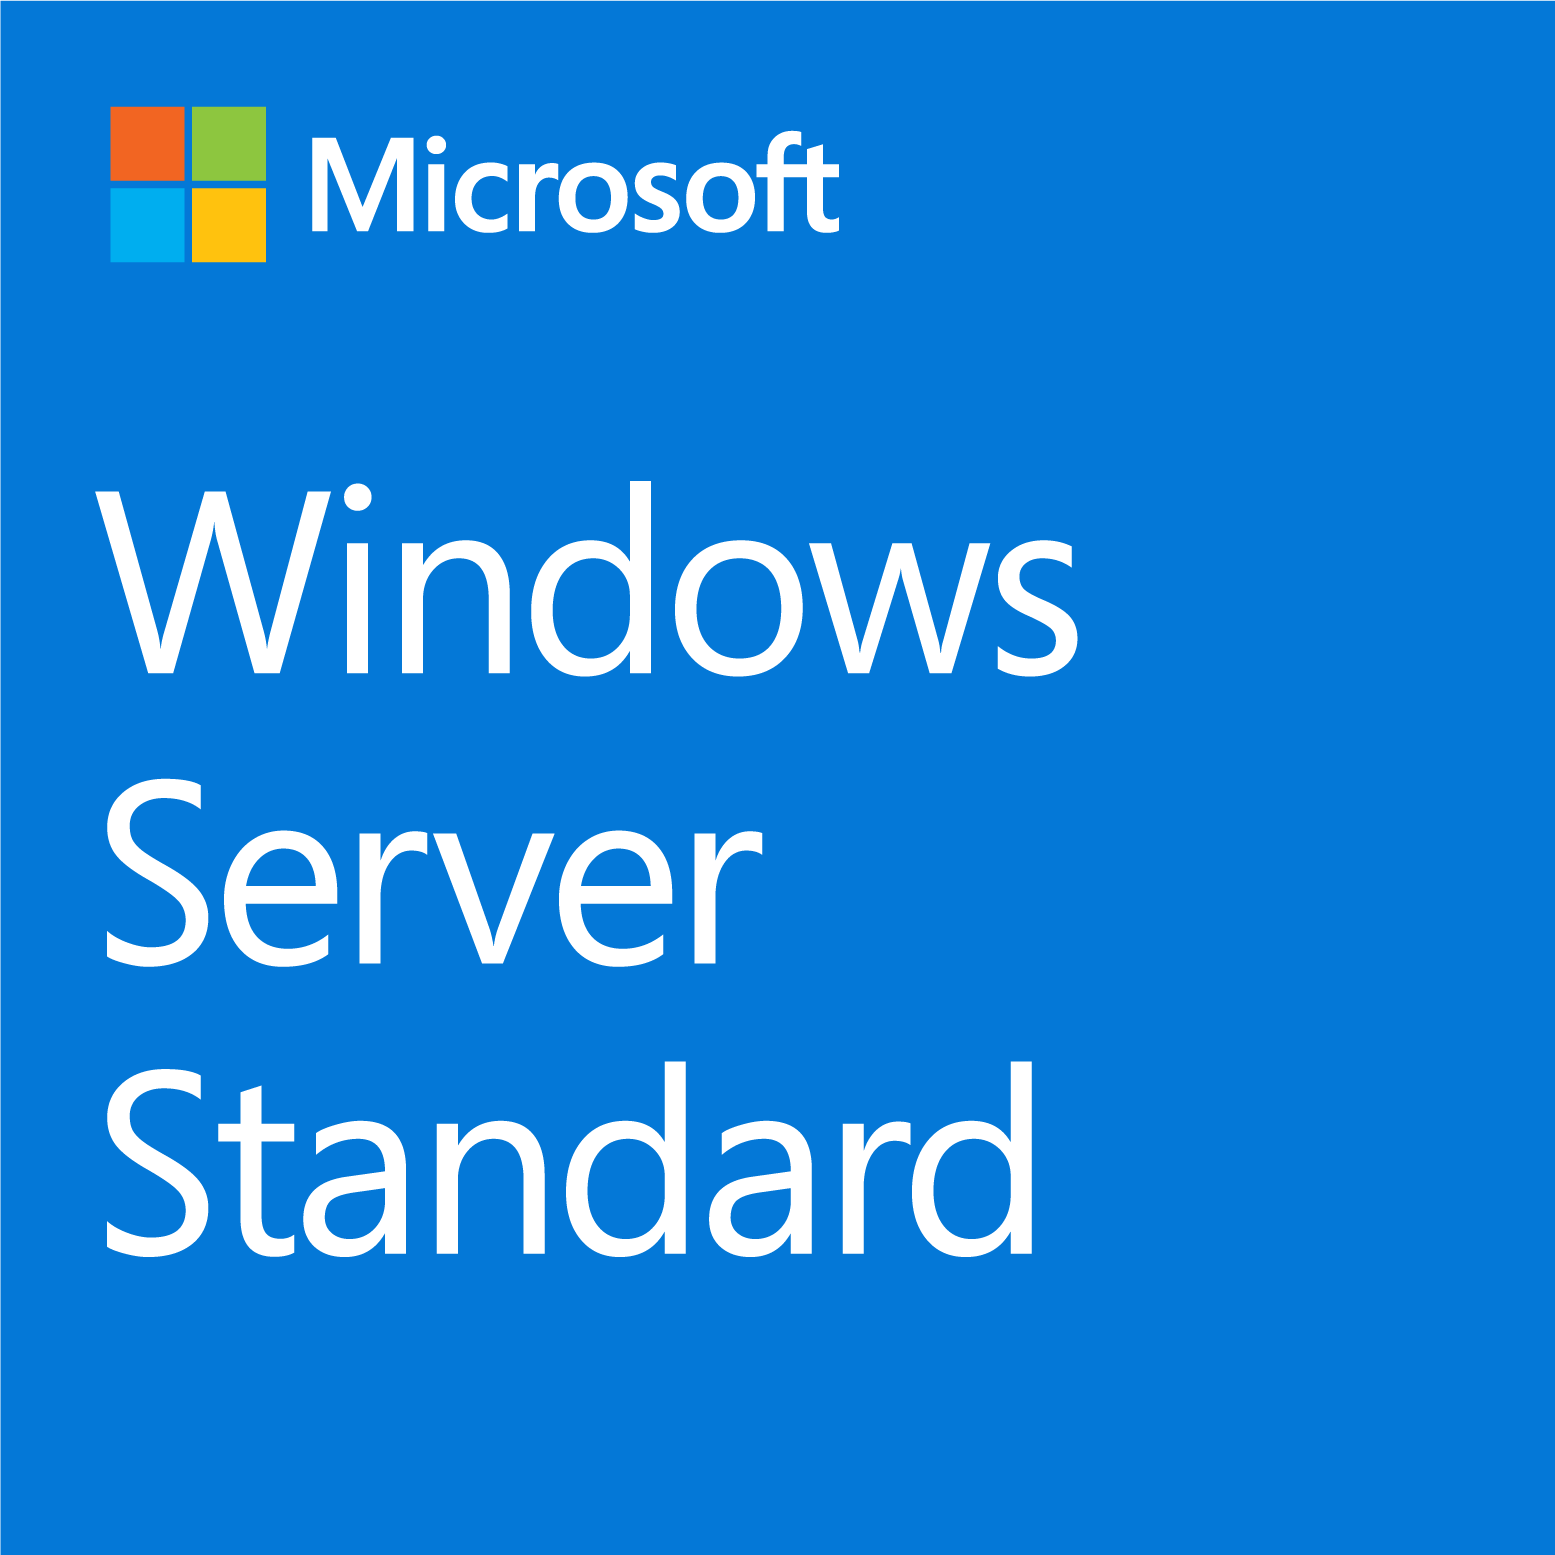 RE25zle?ver=0556%C2%A0 - Windows Server 2019 Standard - 16 Core License Pack and 5 CALs